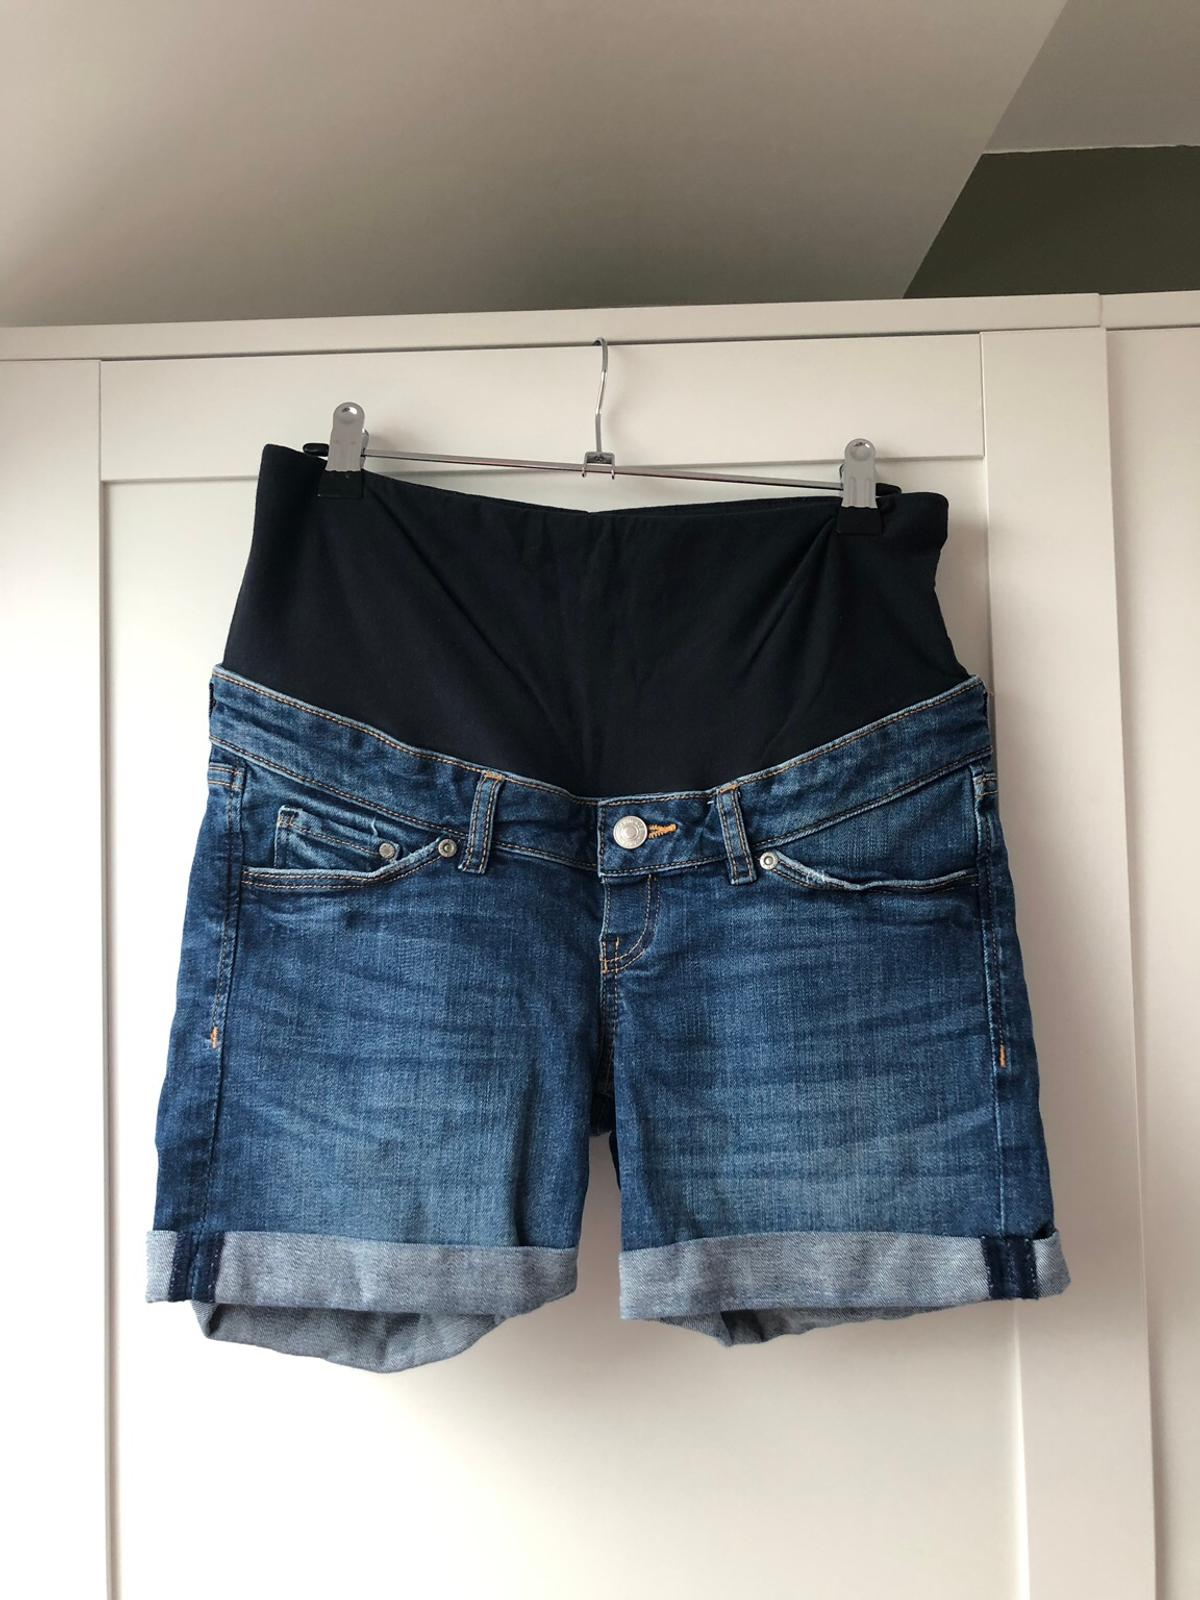 ce026738779f1 H&M Mama Over the bump denim shorts in DE72 Erewash for £4.00 for ...